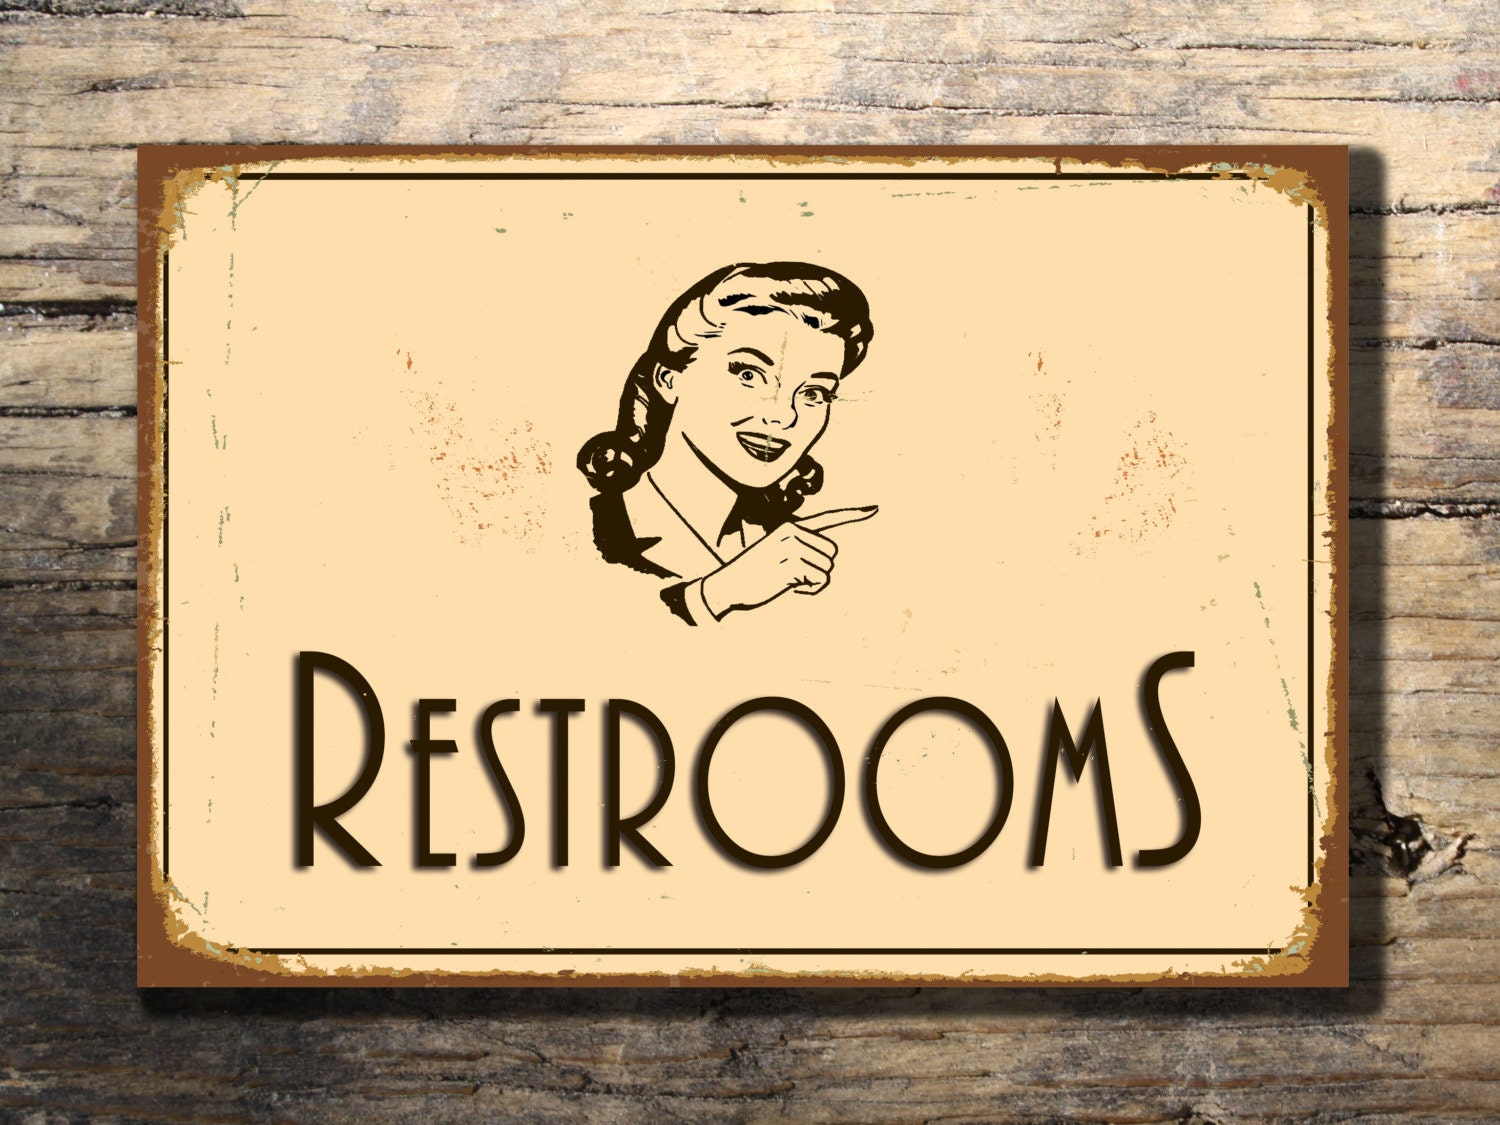 RESTROOM SIGN Restroom Signs Vintage Style By